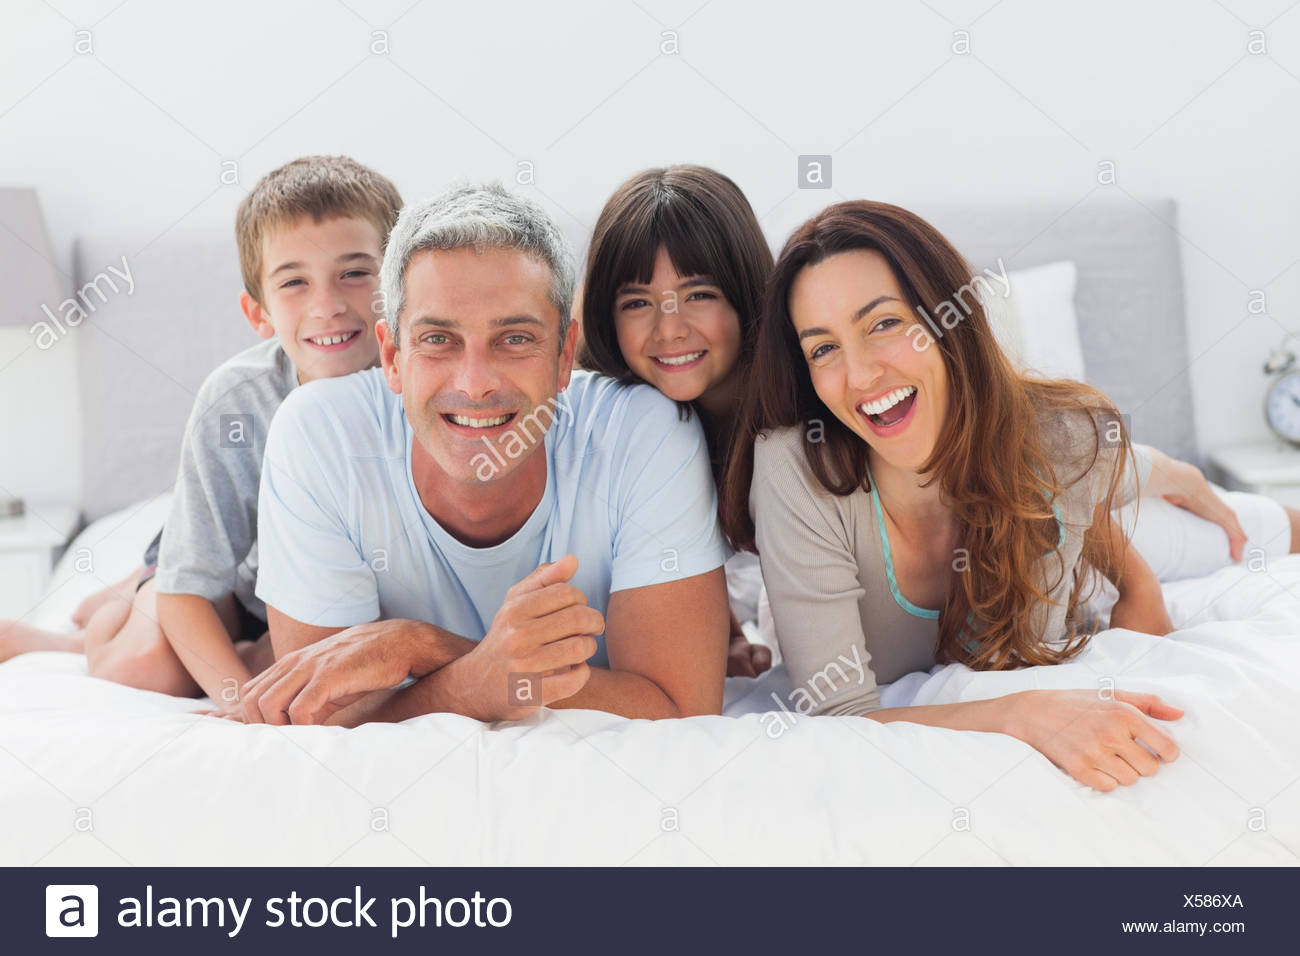 Happy family lying together - Stock Image